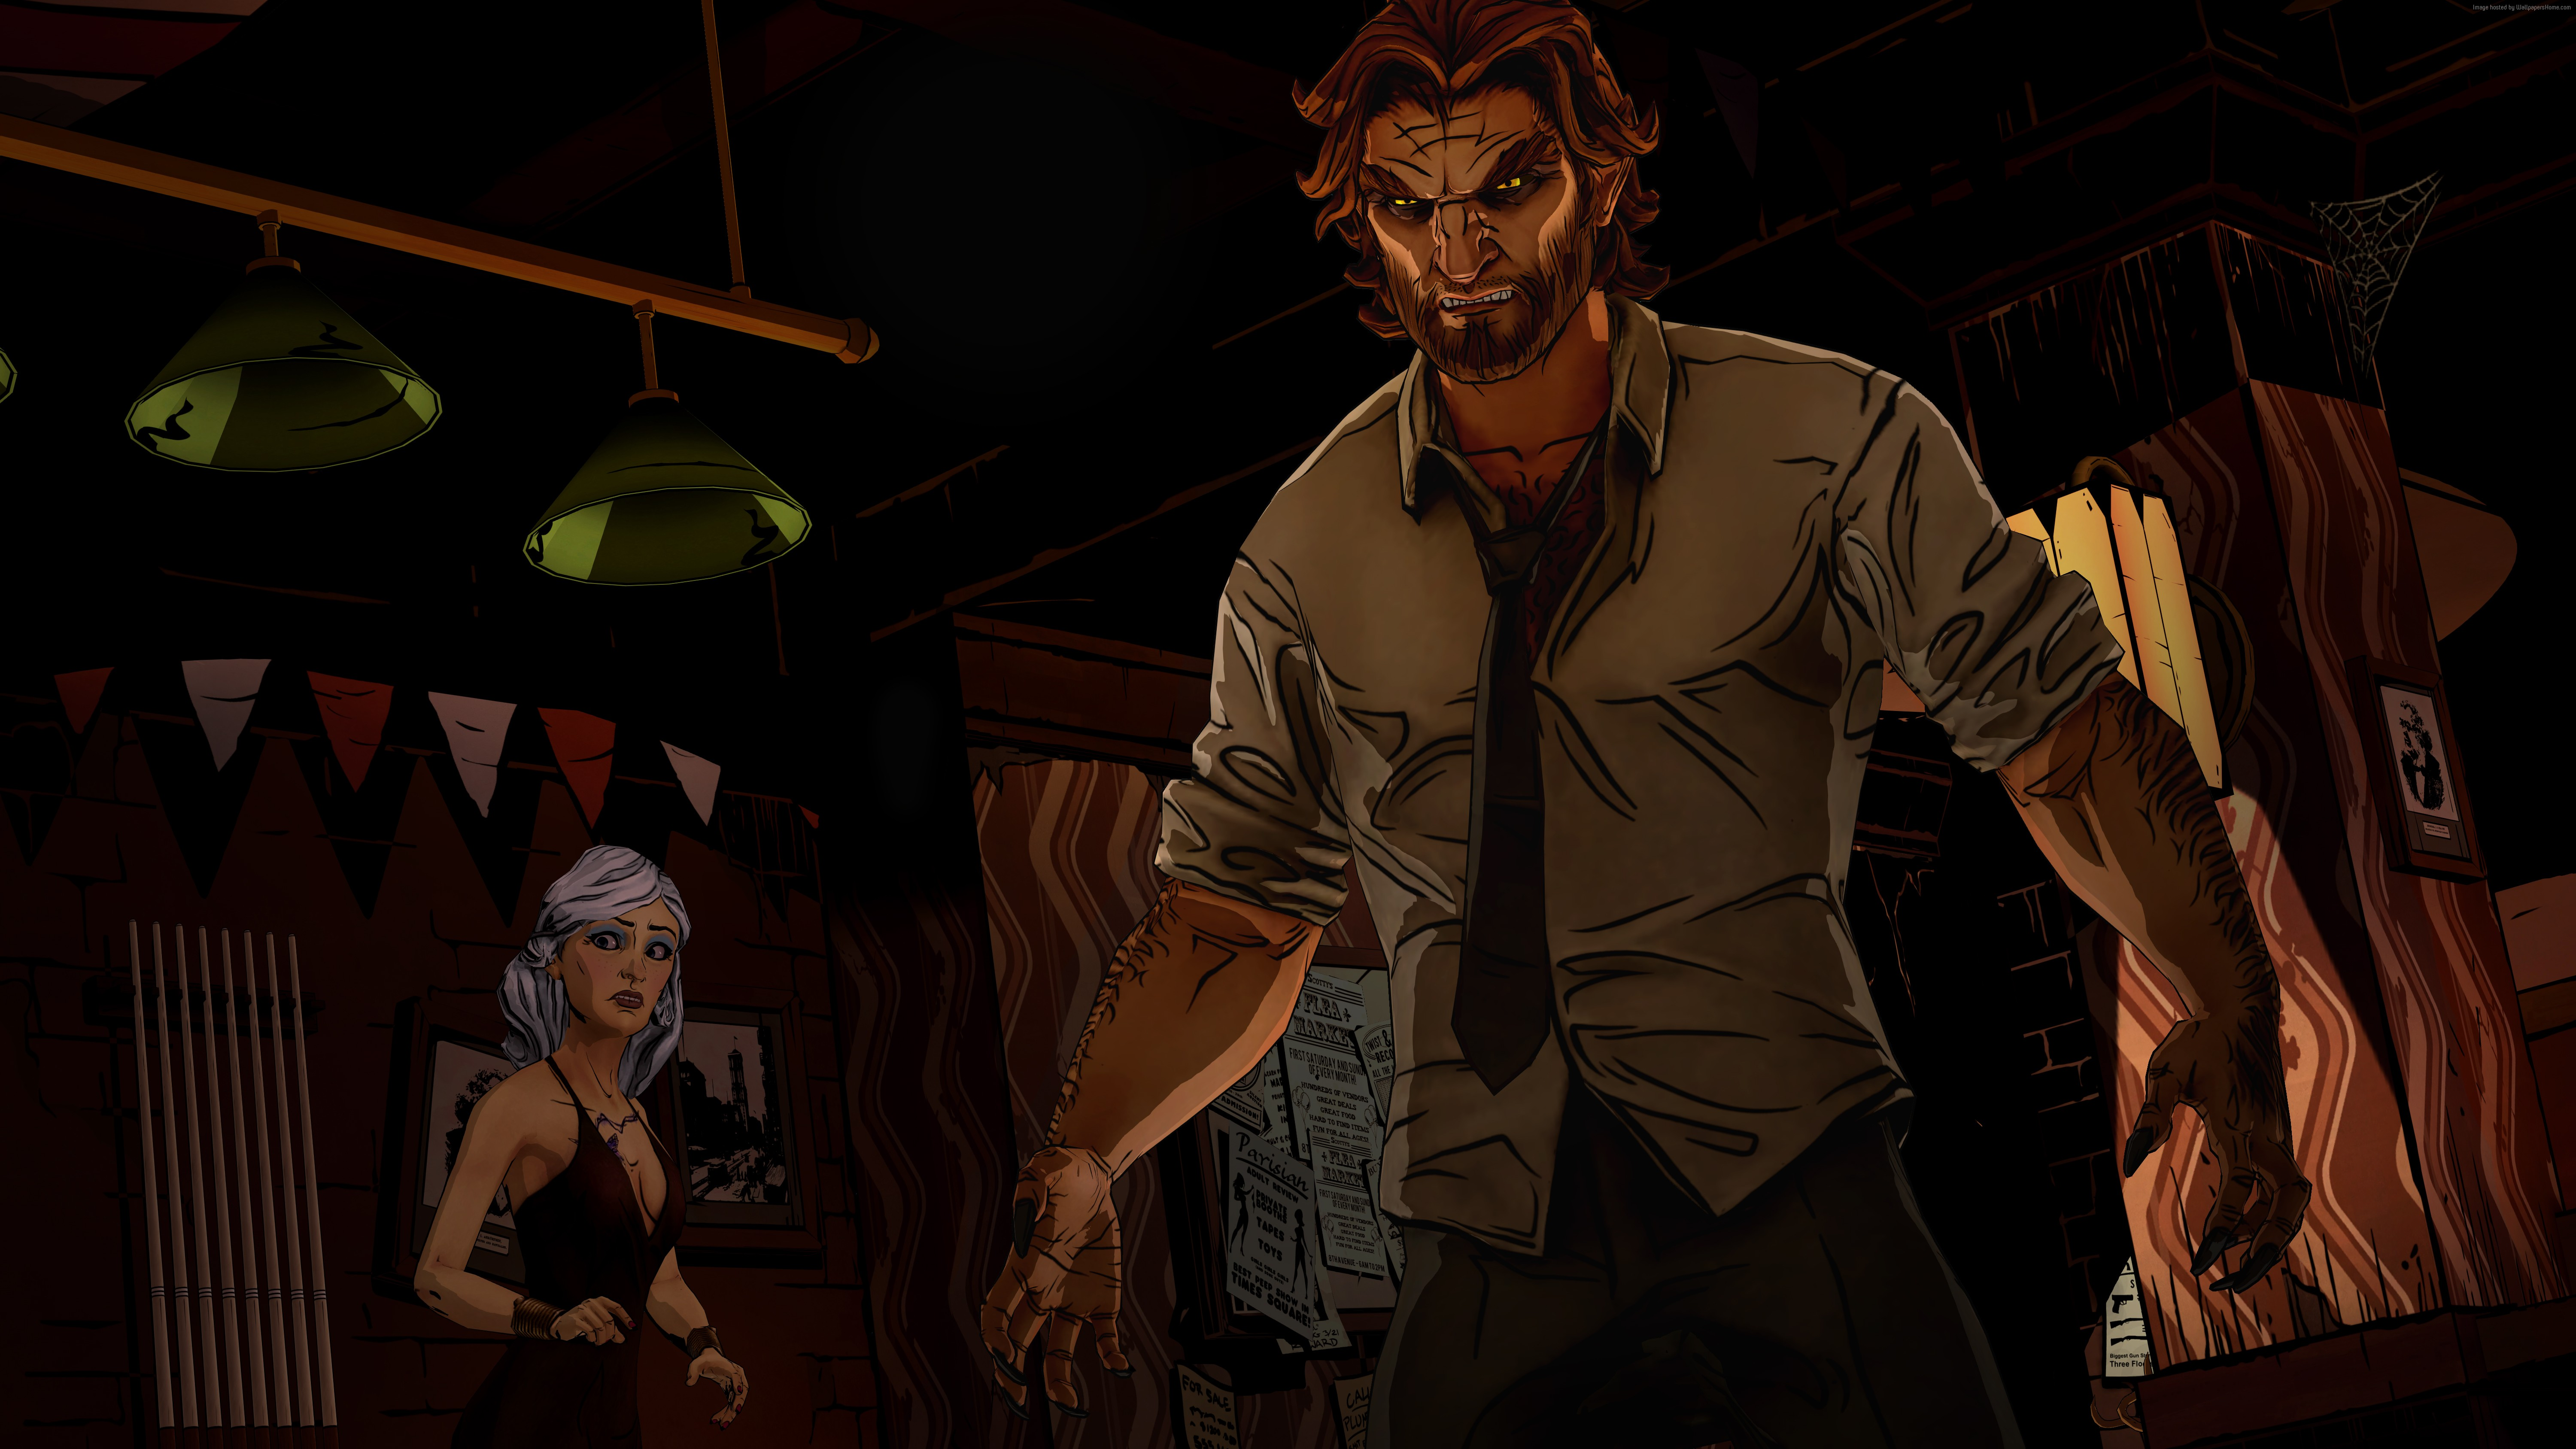 Your Resolution 1024x1024 Resolutions PC Mac Android IOS Custom Tags The Wolf Among Us